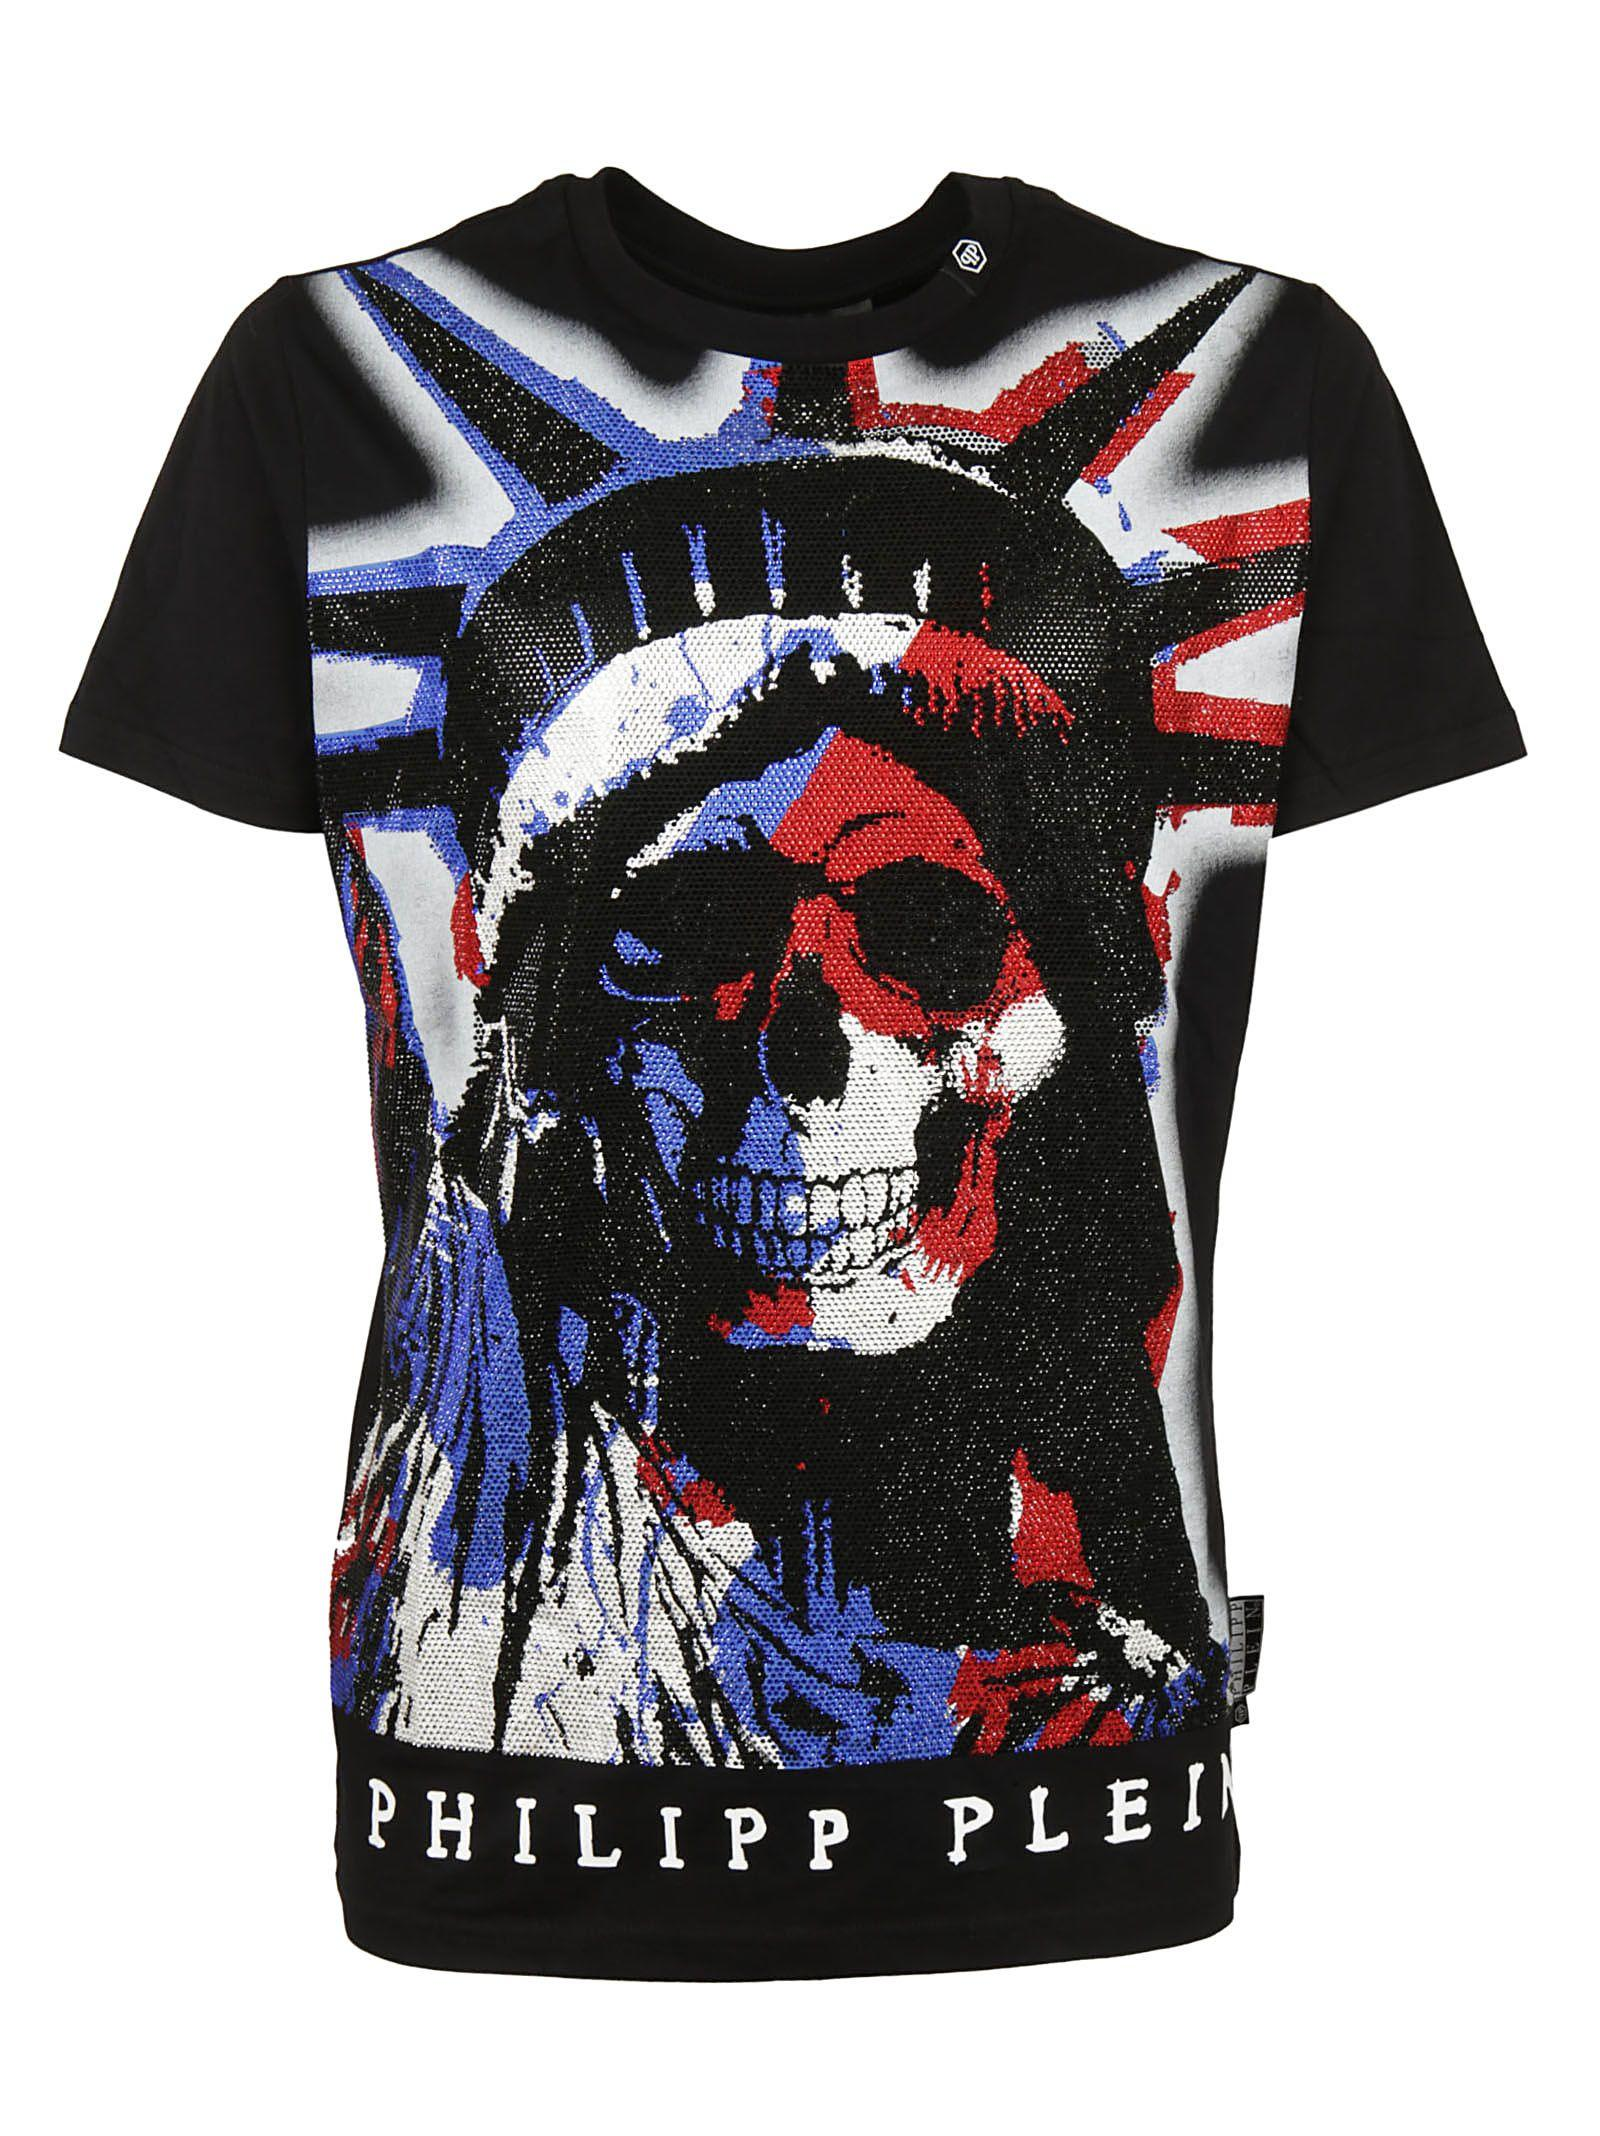 Philipp Plein Printed T-shirt In Black